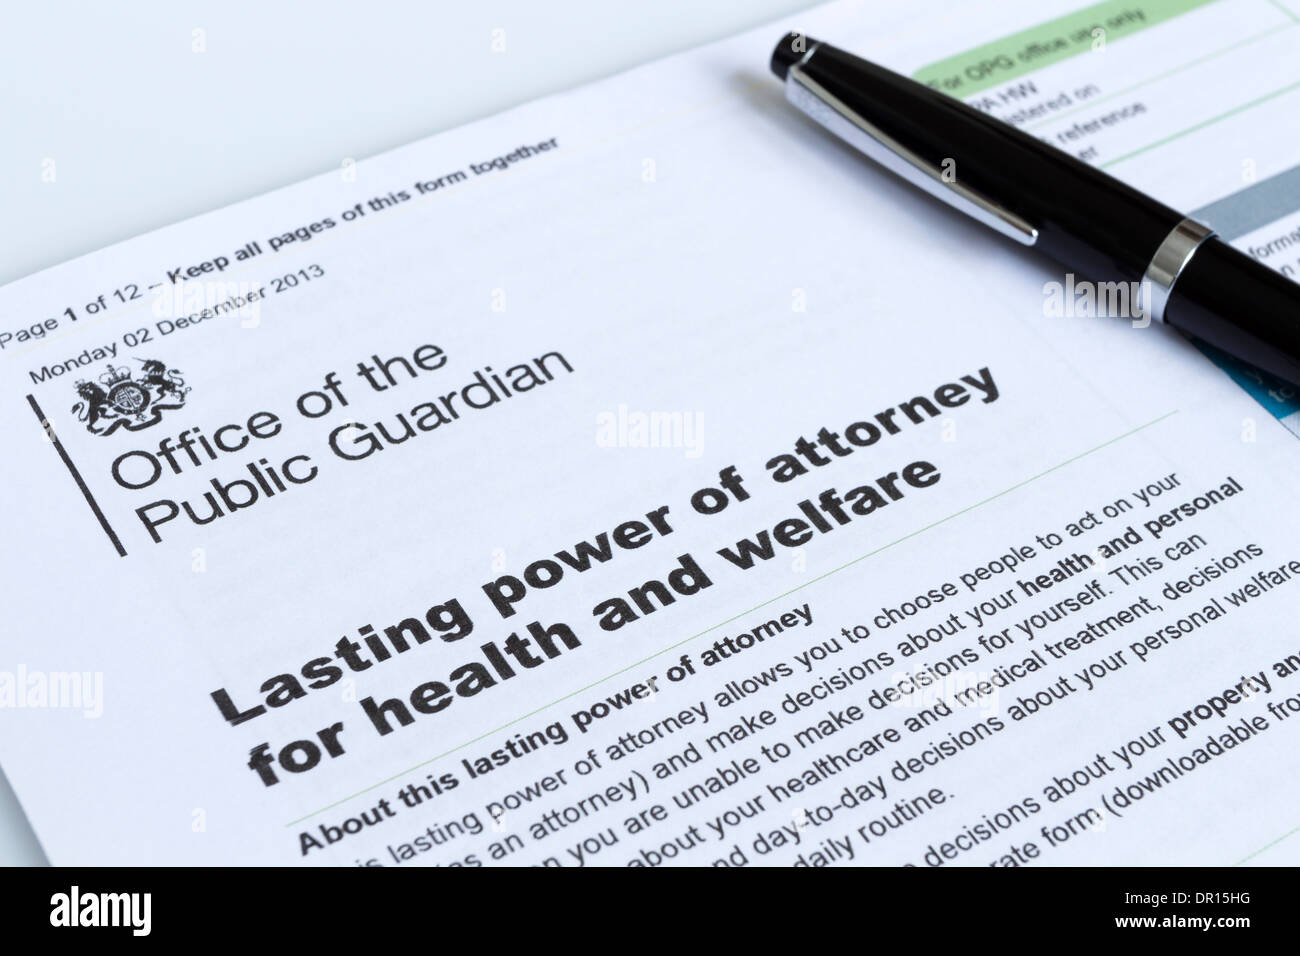 Lasting power of attorney for health and welfare form from the lasting power of attorney for health and welfare form from the office of the public guardian uk falaconquin